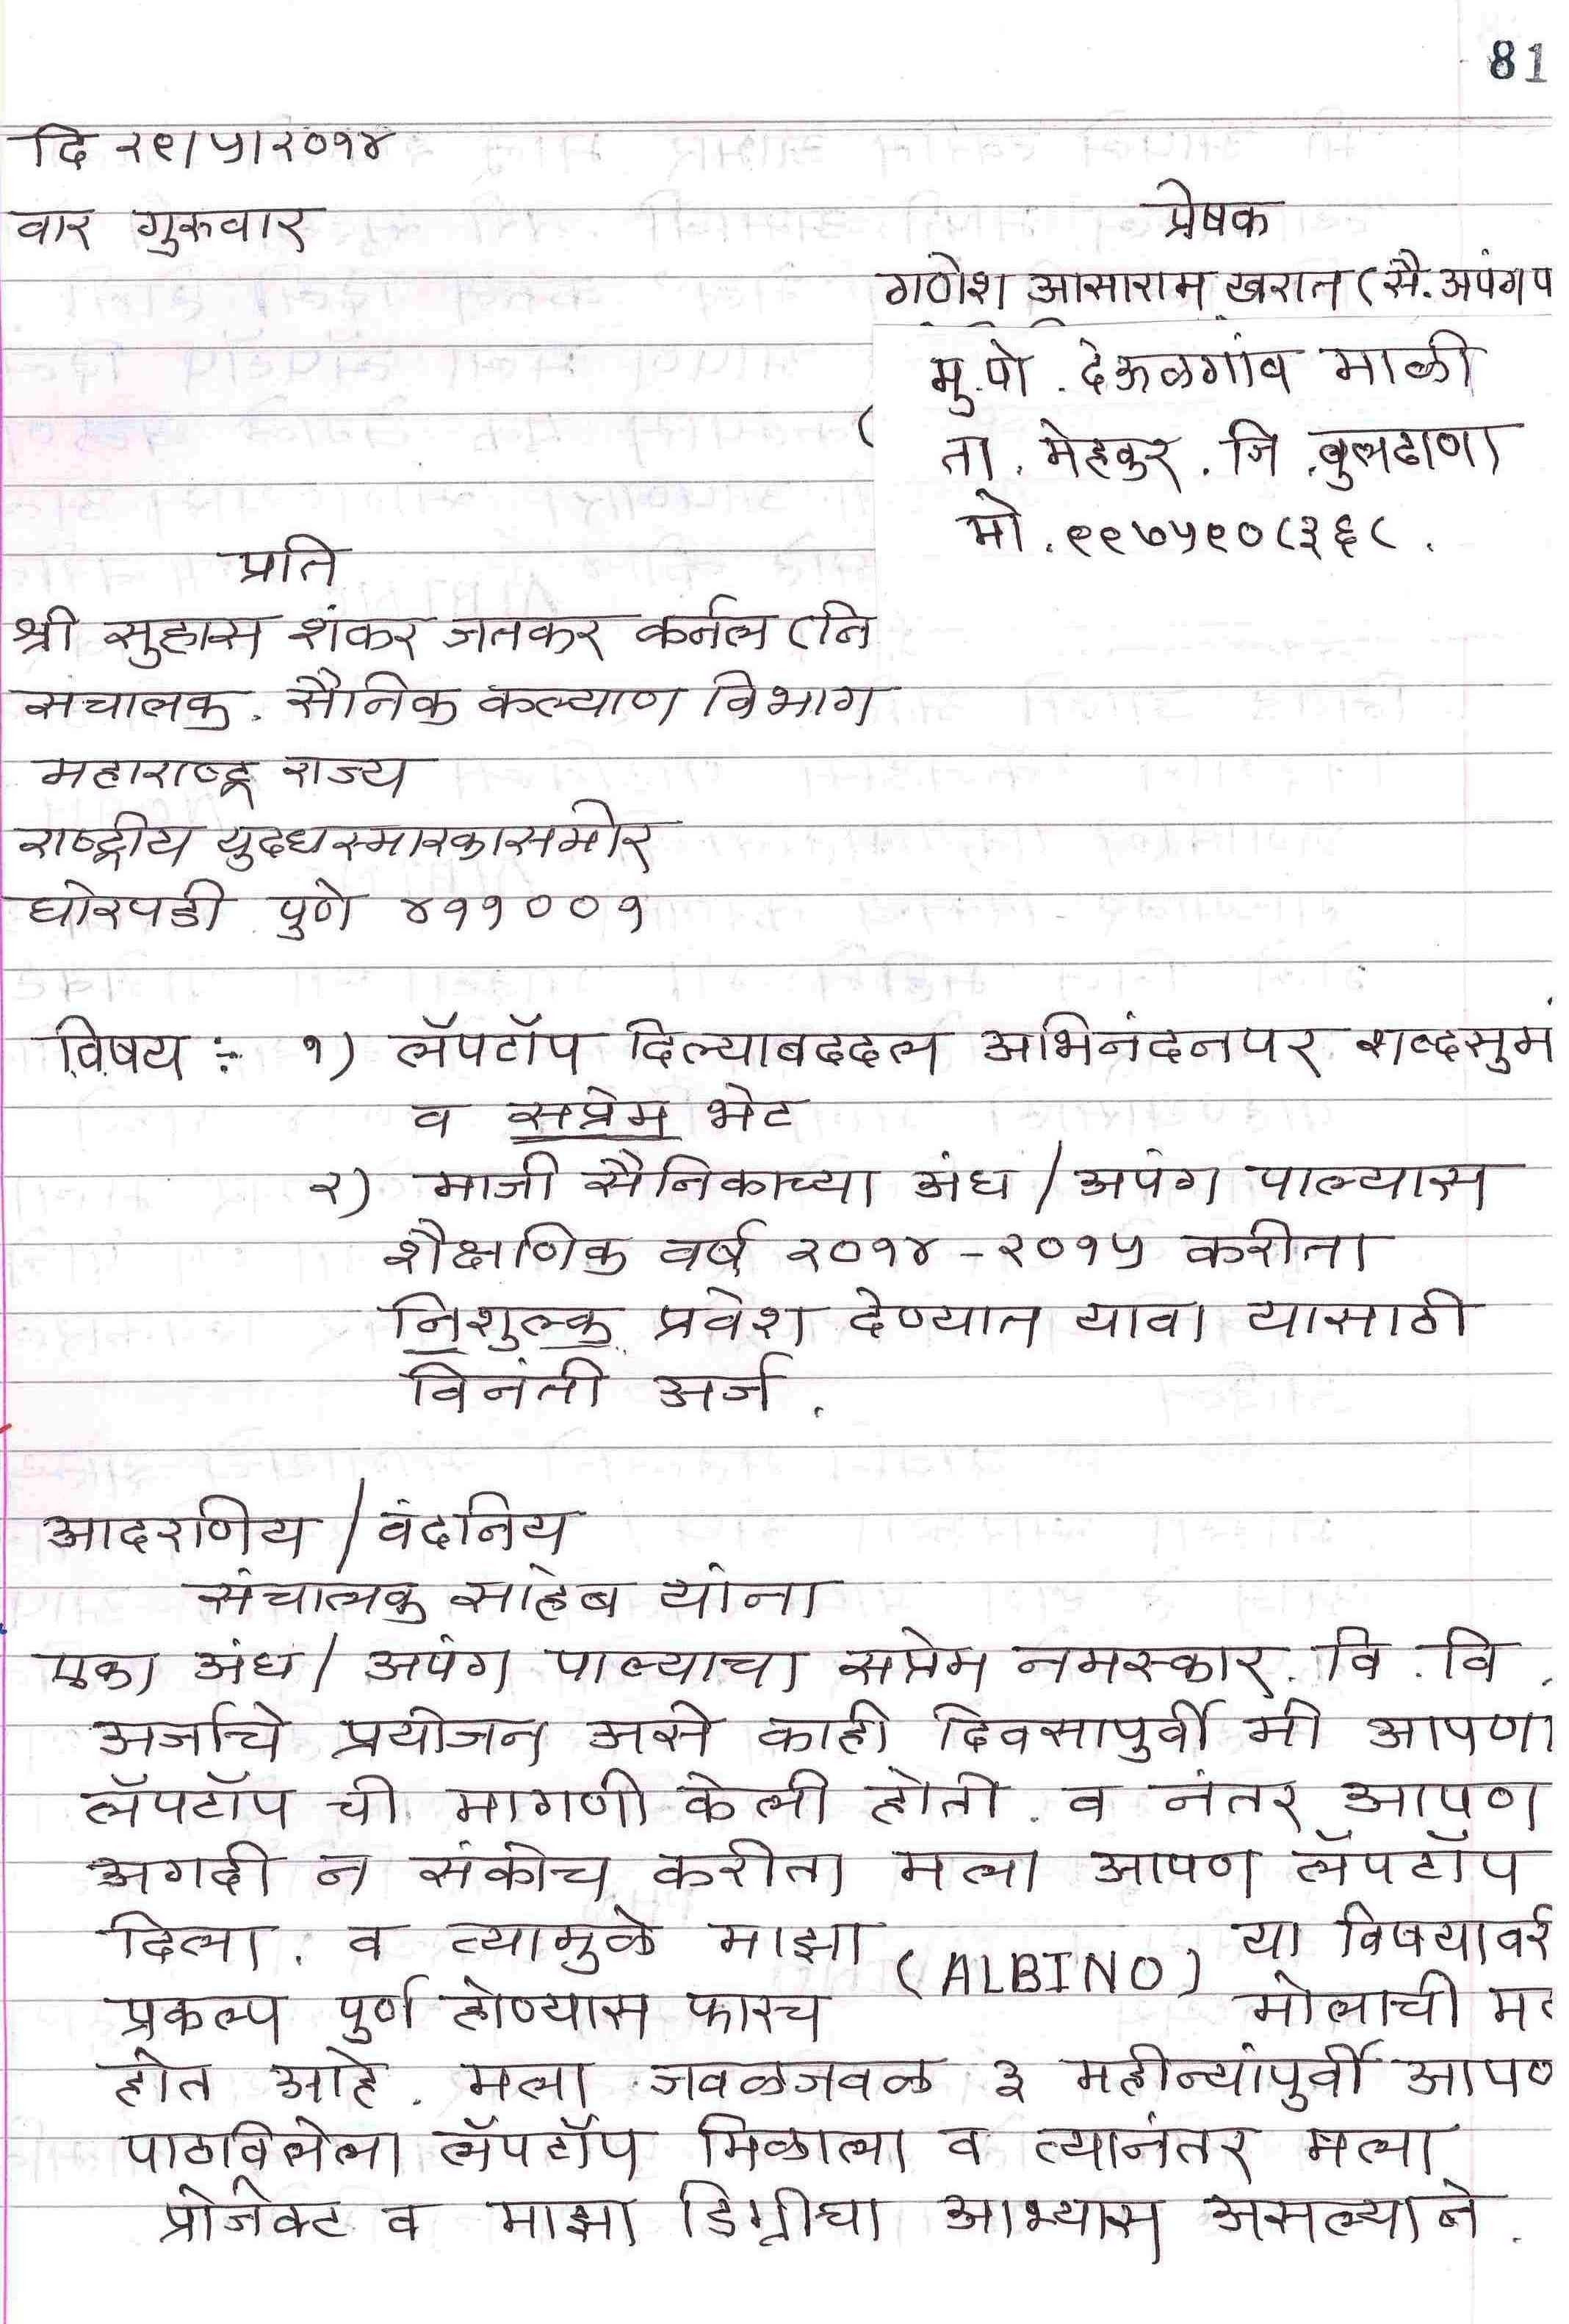 Valid formative Letter In Hindi Language Formal letter